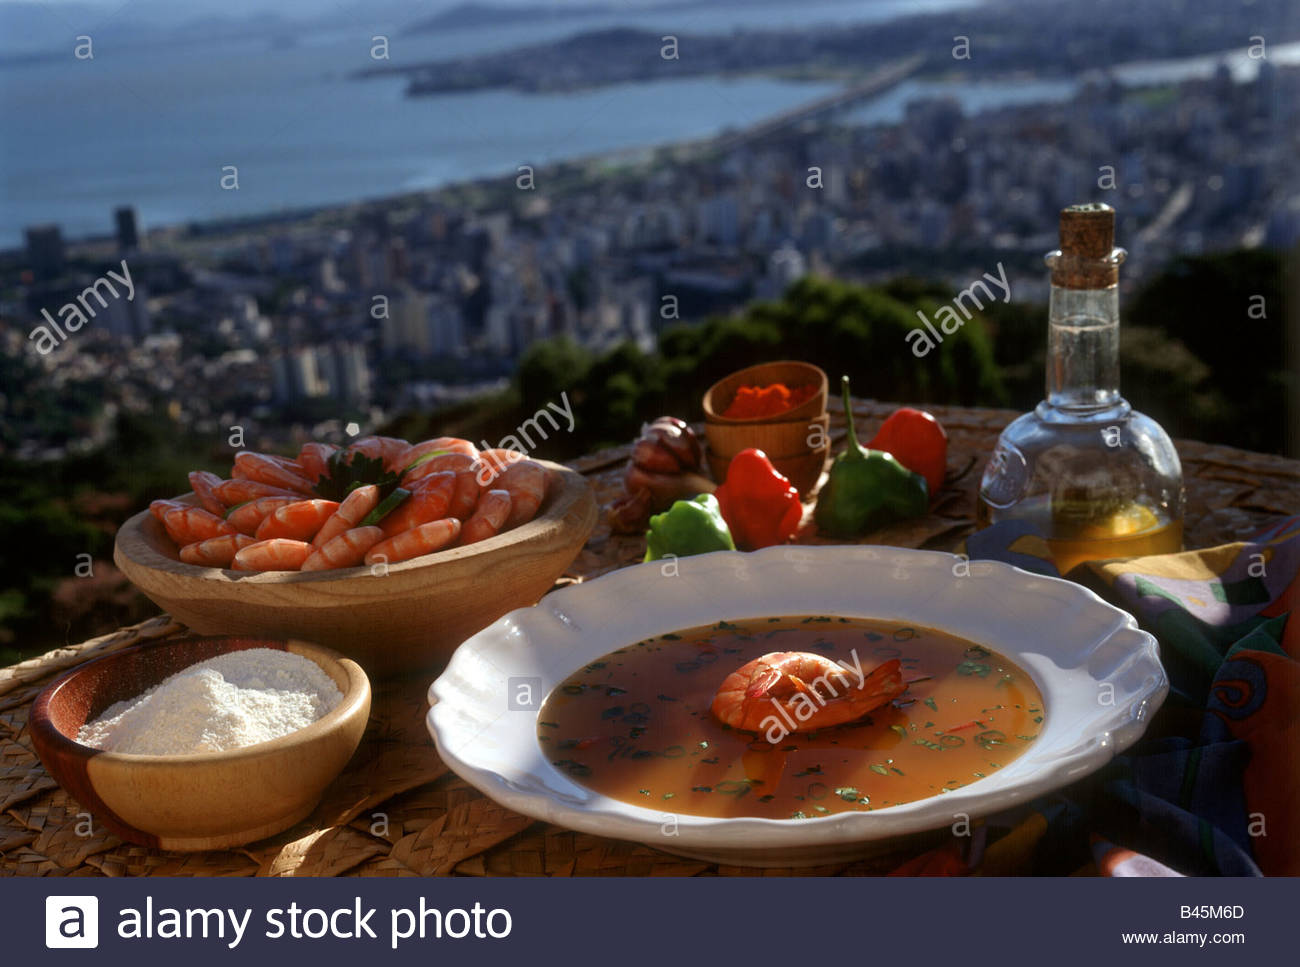 Caldo De Camaroes Shrimp Broth With Manioc Meal Brazil Stock Photo